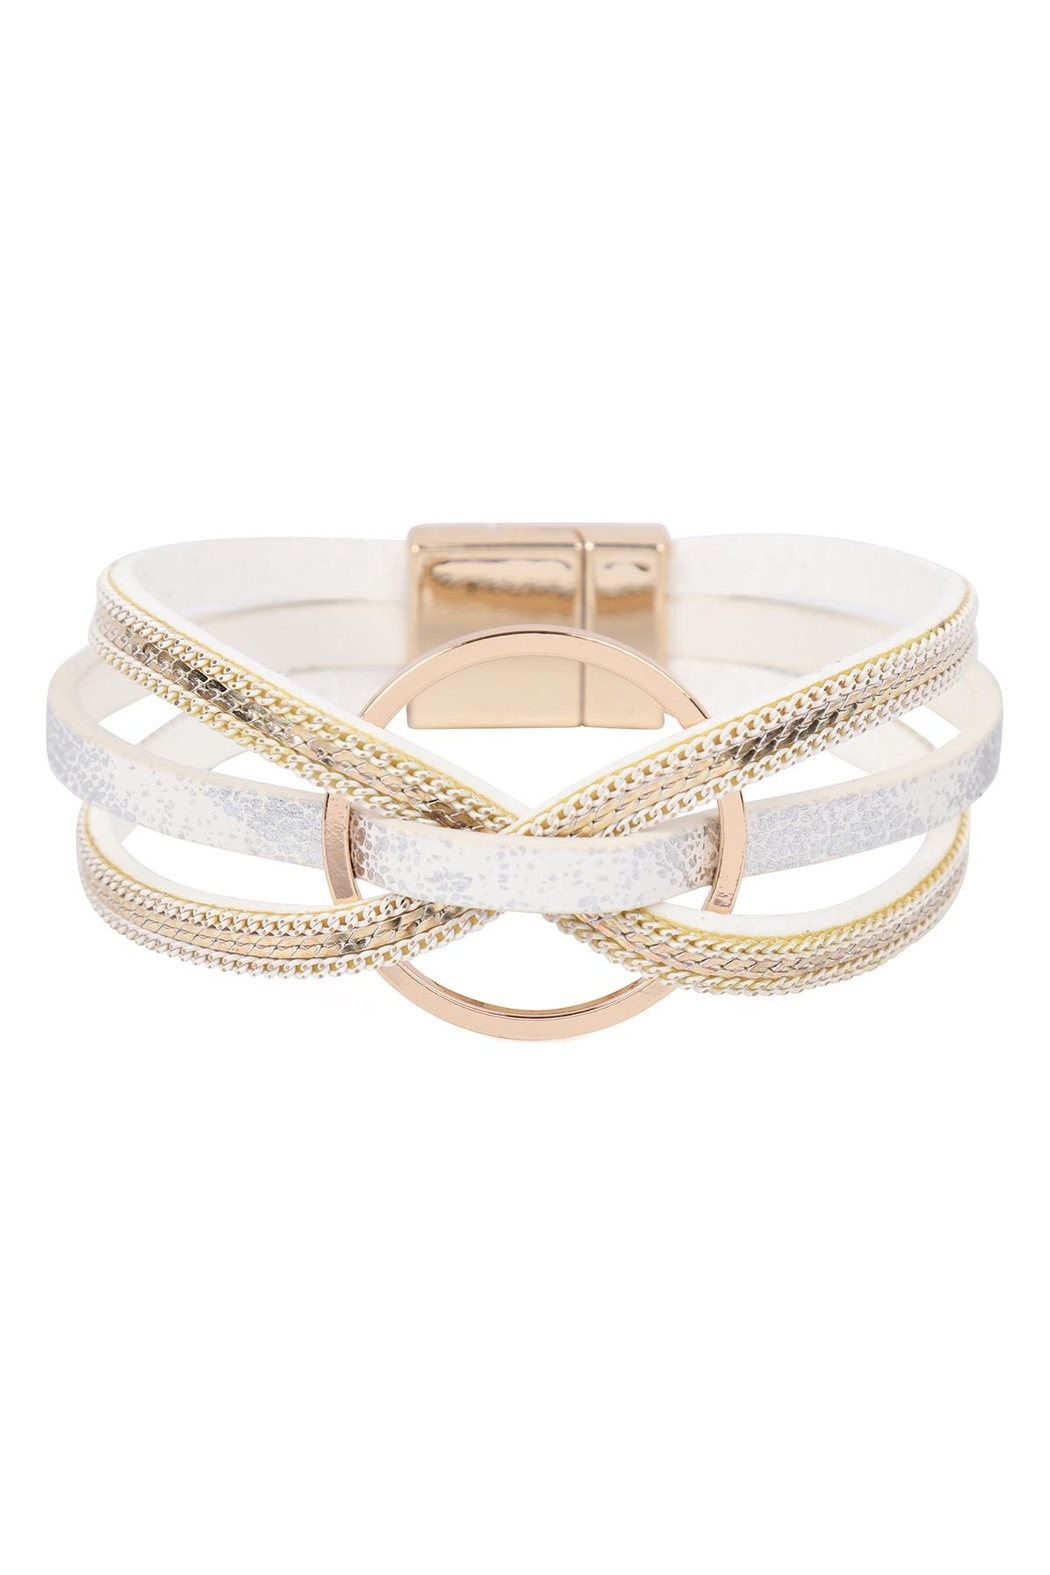 Riah Fashion Leather With Ring Charm Magnetic Wrap Bracelet - Main Image